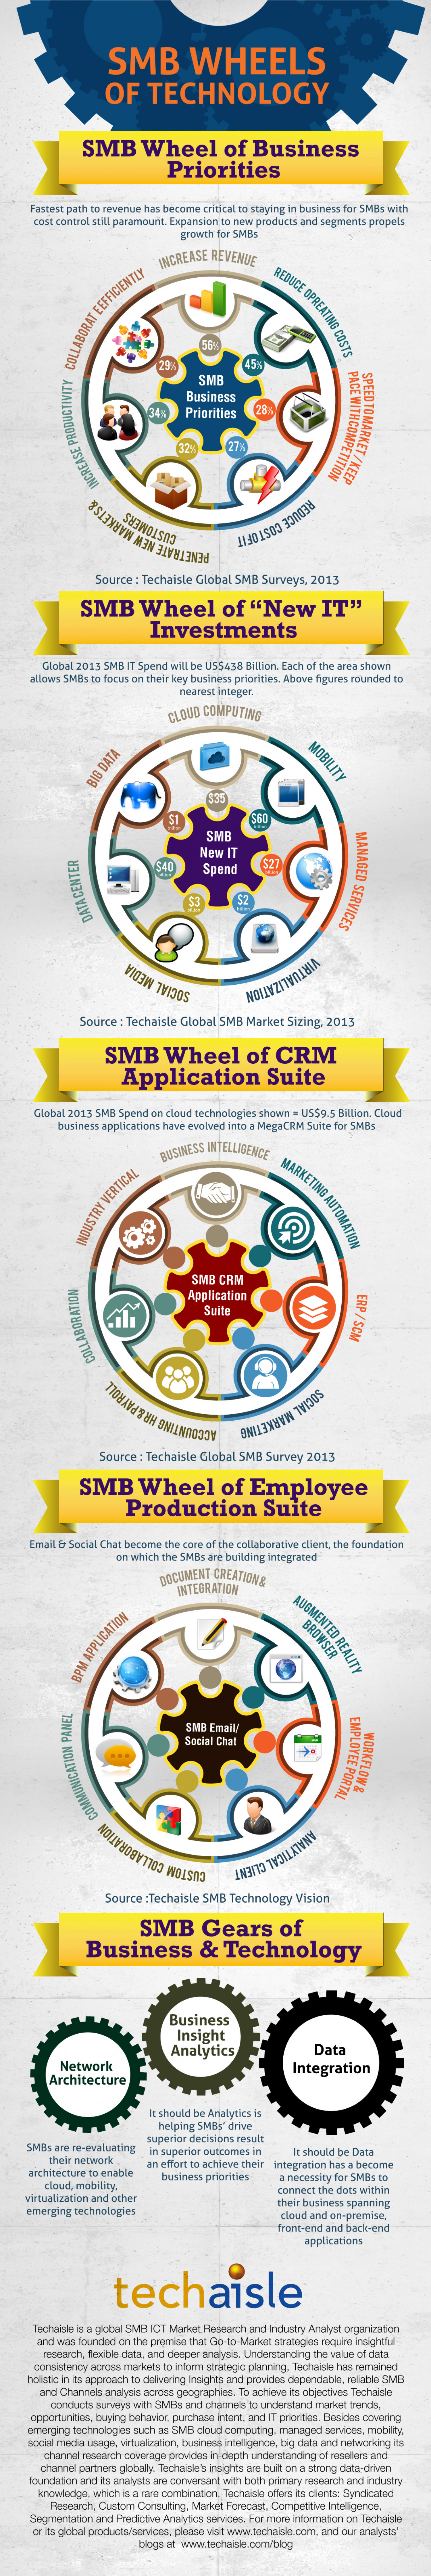 SMB Wheels of Technology Infographic